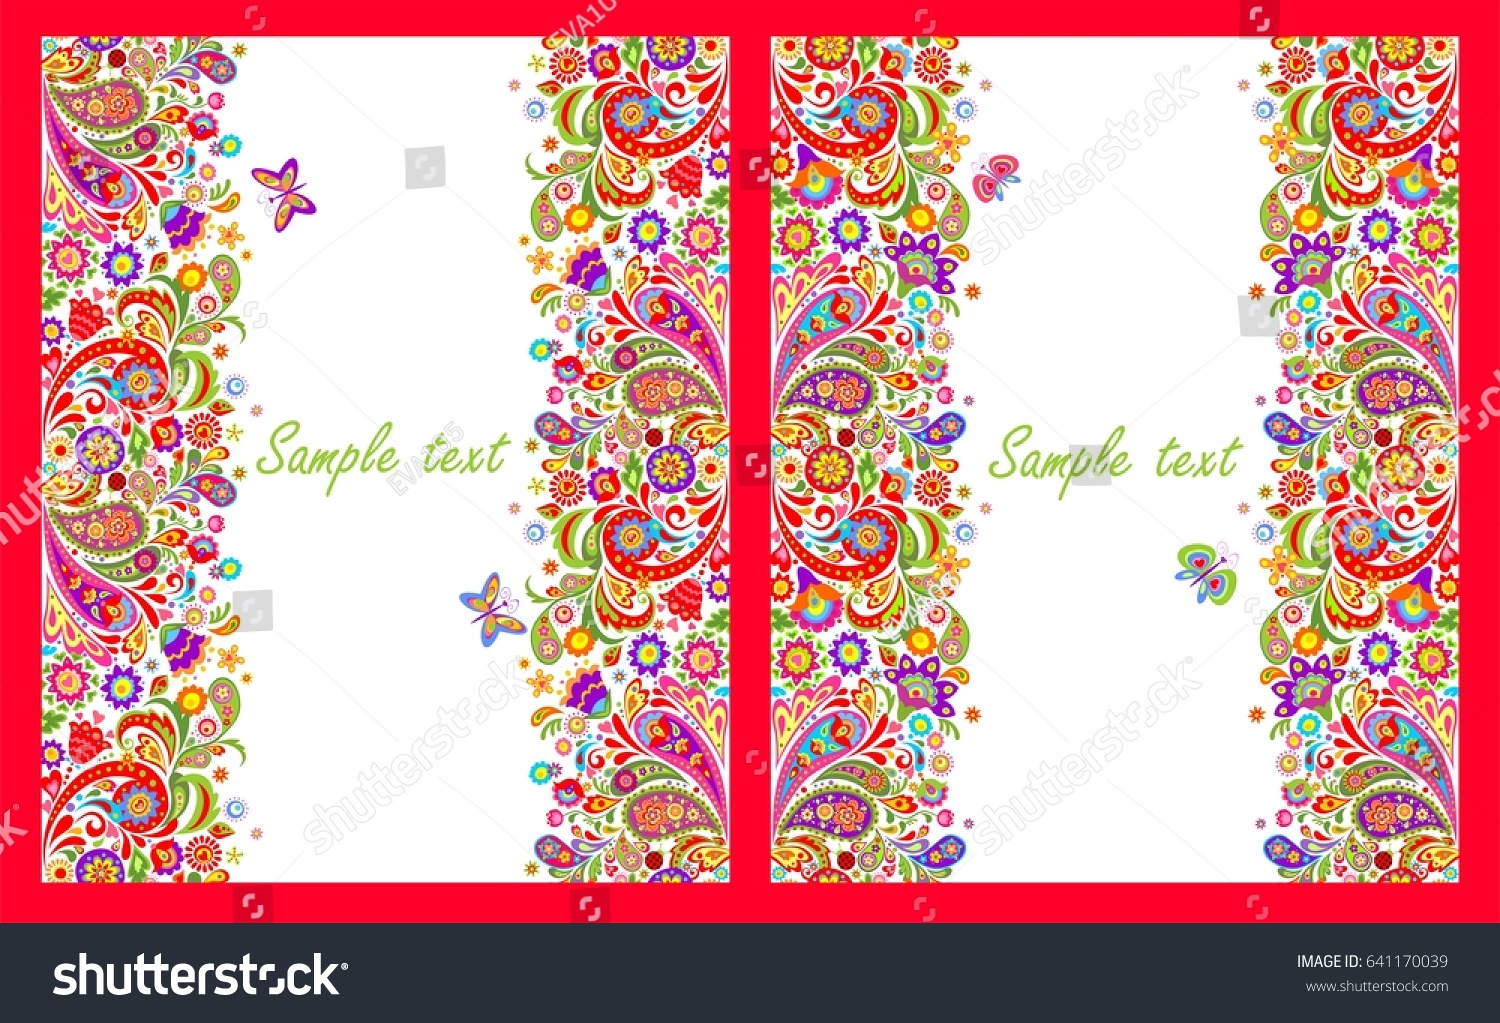 Greeting cards seamless decorative borders colorful stock vector greeting cards with seamless decorative borders with colorful abstract flowers print on white background kristyandbryce Image collections